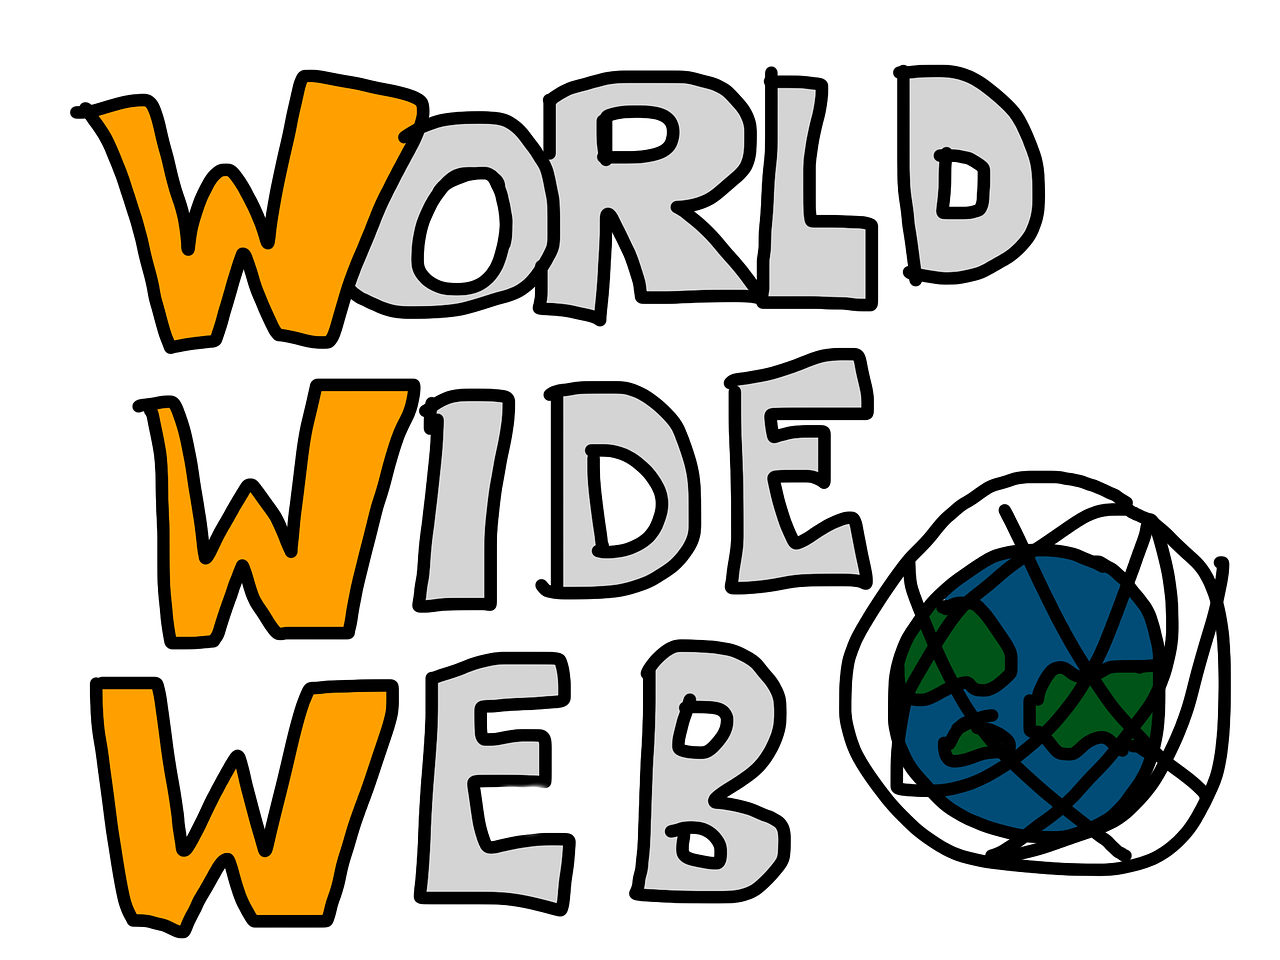 Reading: The World Wide Web | ITE 115 Introduction to ...